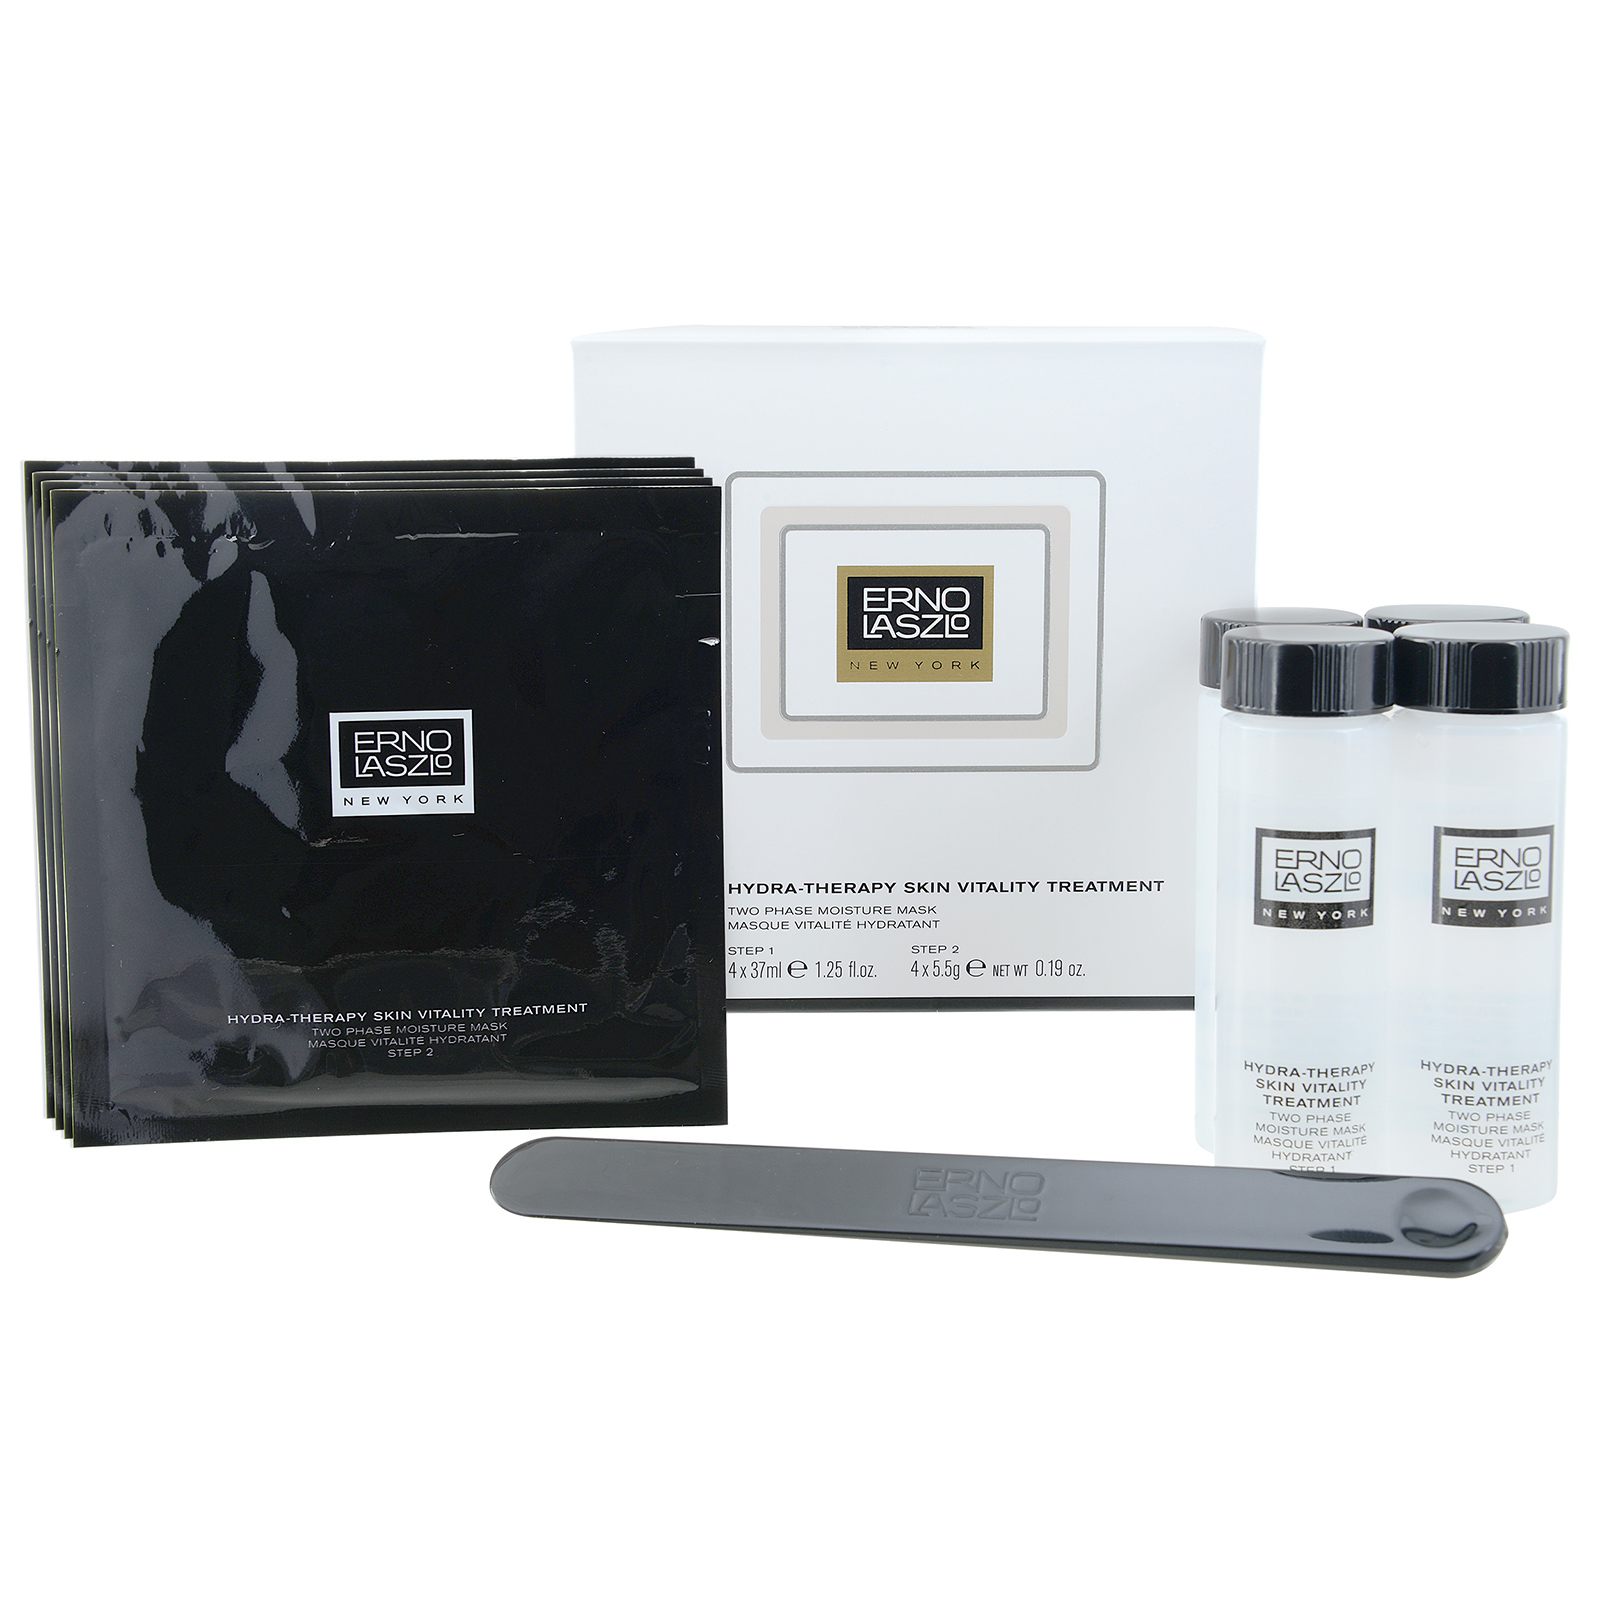 ERNO LASZLO  Hydra-Therapy Skin Vitality Treatment (For All Skin Types) 4 x 37 ml+ 4 x 5.5g, 4 x 1.25 + 4 x 0.19oz